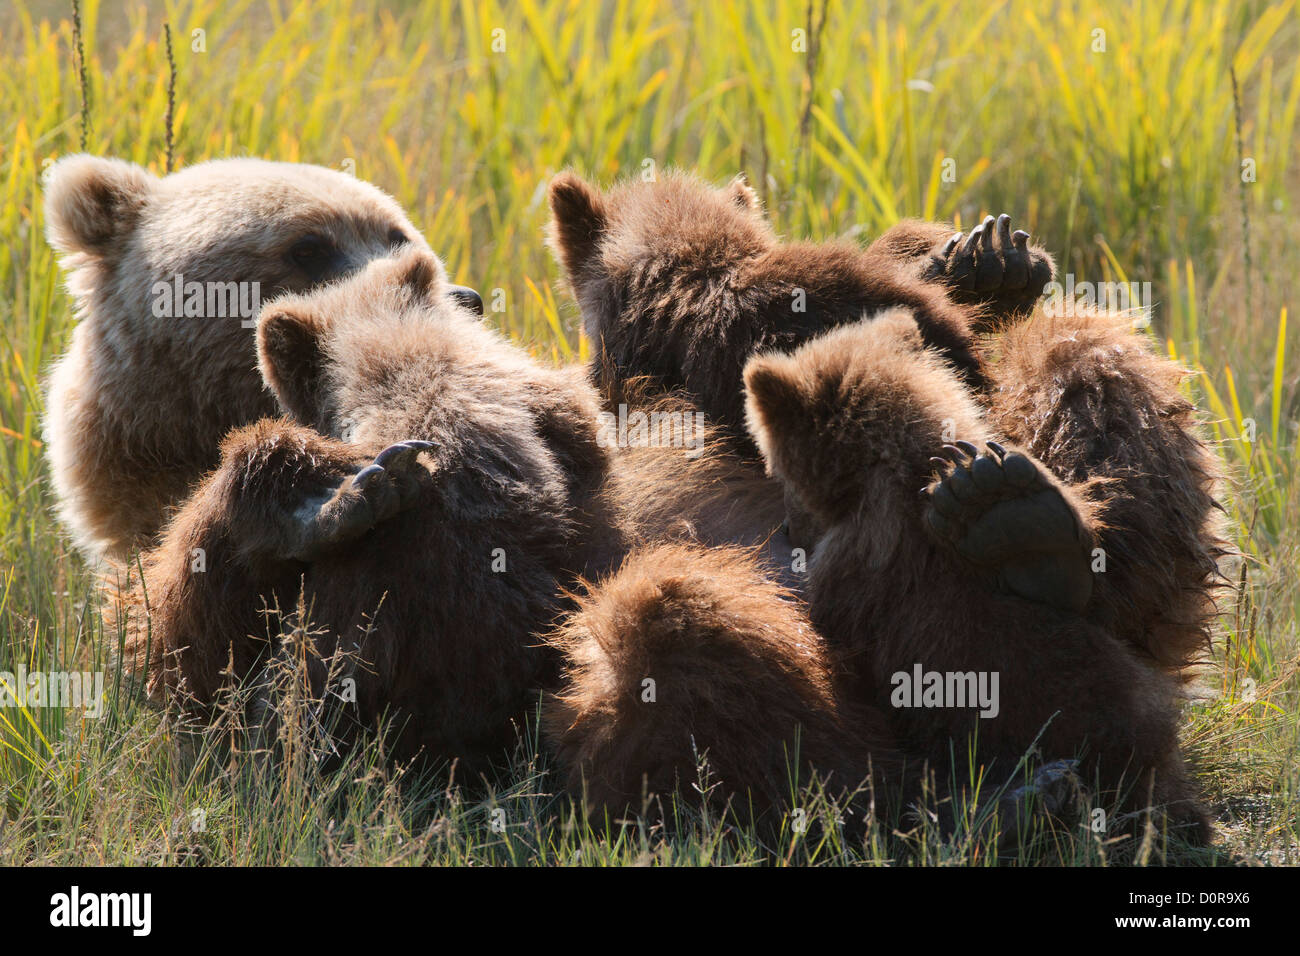 Sow with triplet Brown or Grizzly Bear spring cubs, Lake Clark National Park, Alaska. - Stock Image